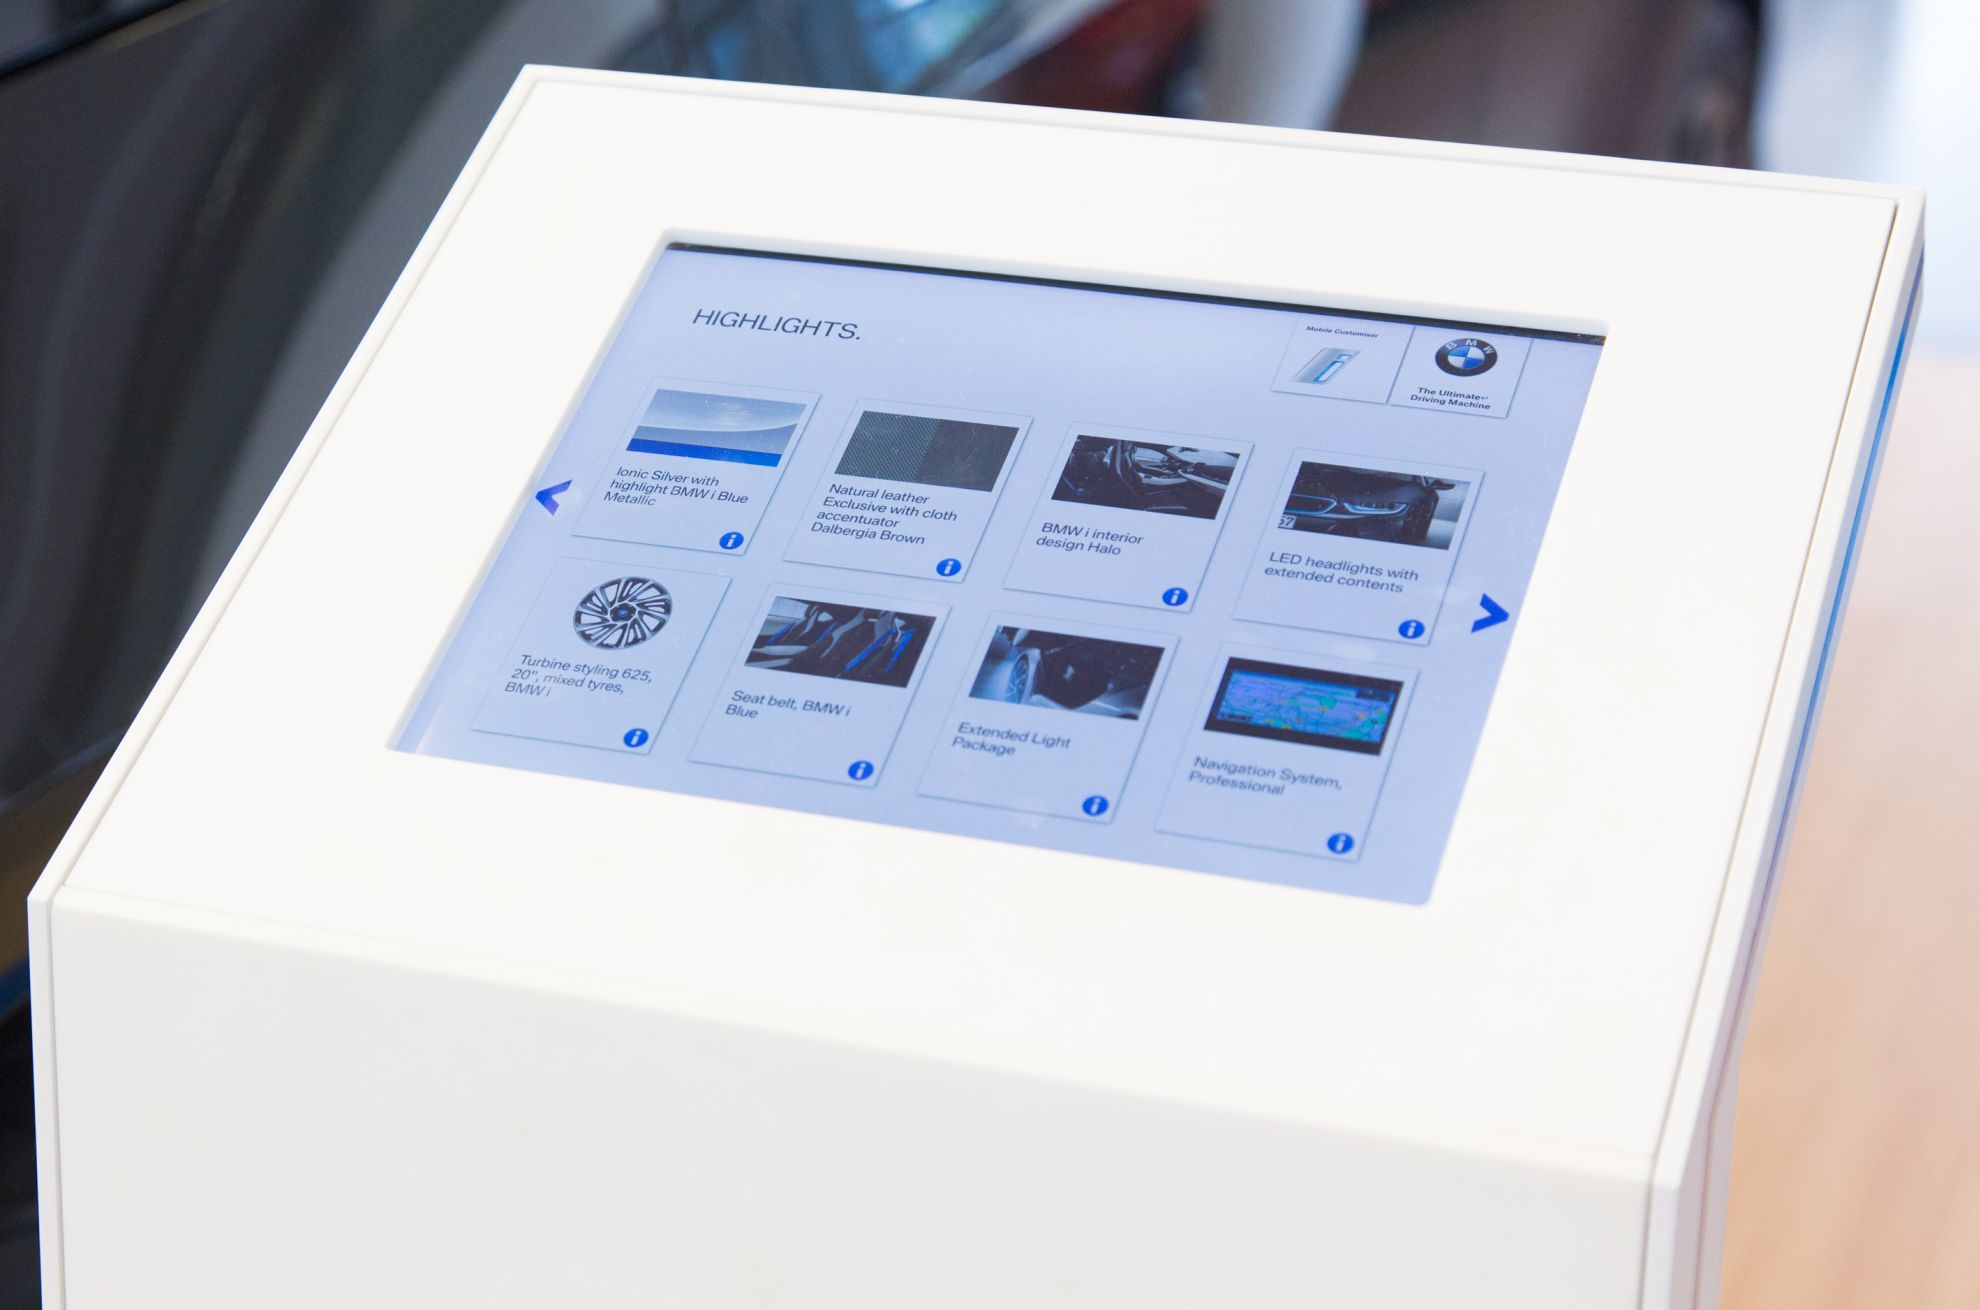 bmw-south-africa-introduces-the-future-of-retailing-to-its-dealerships-2